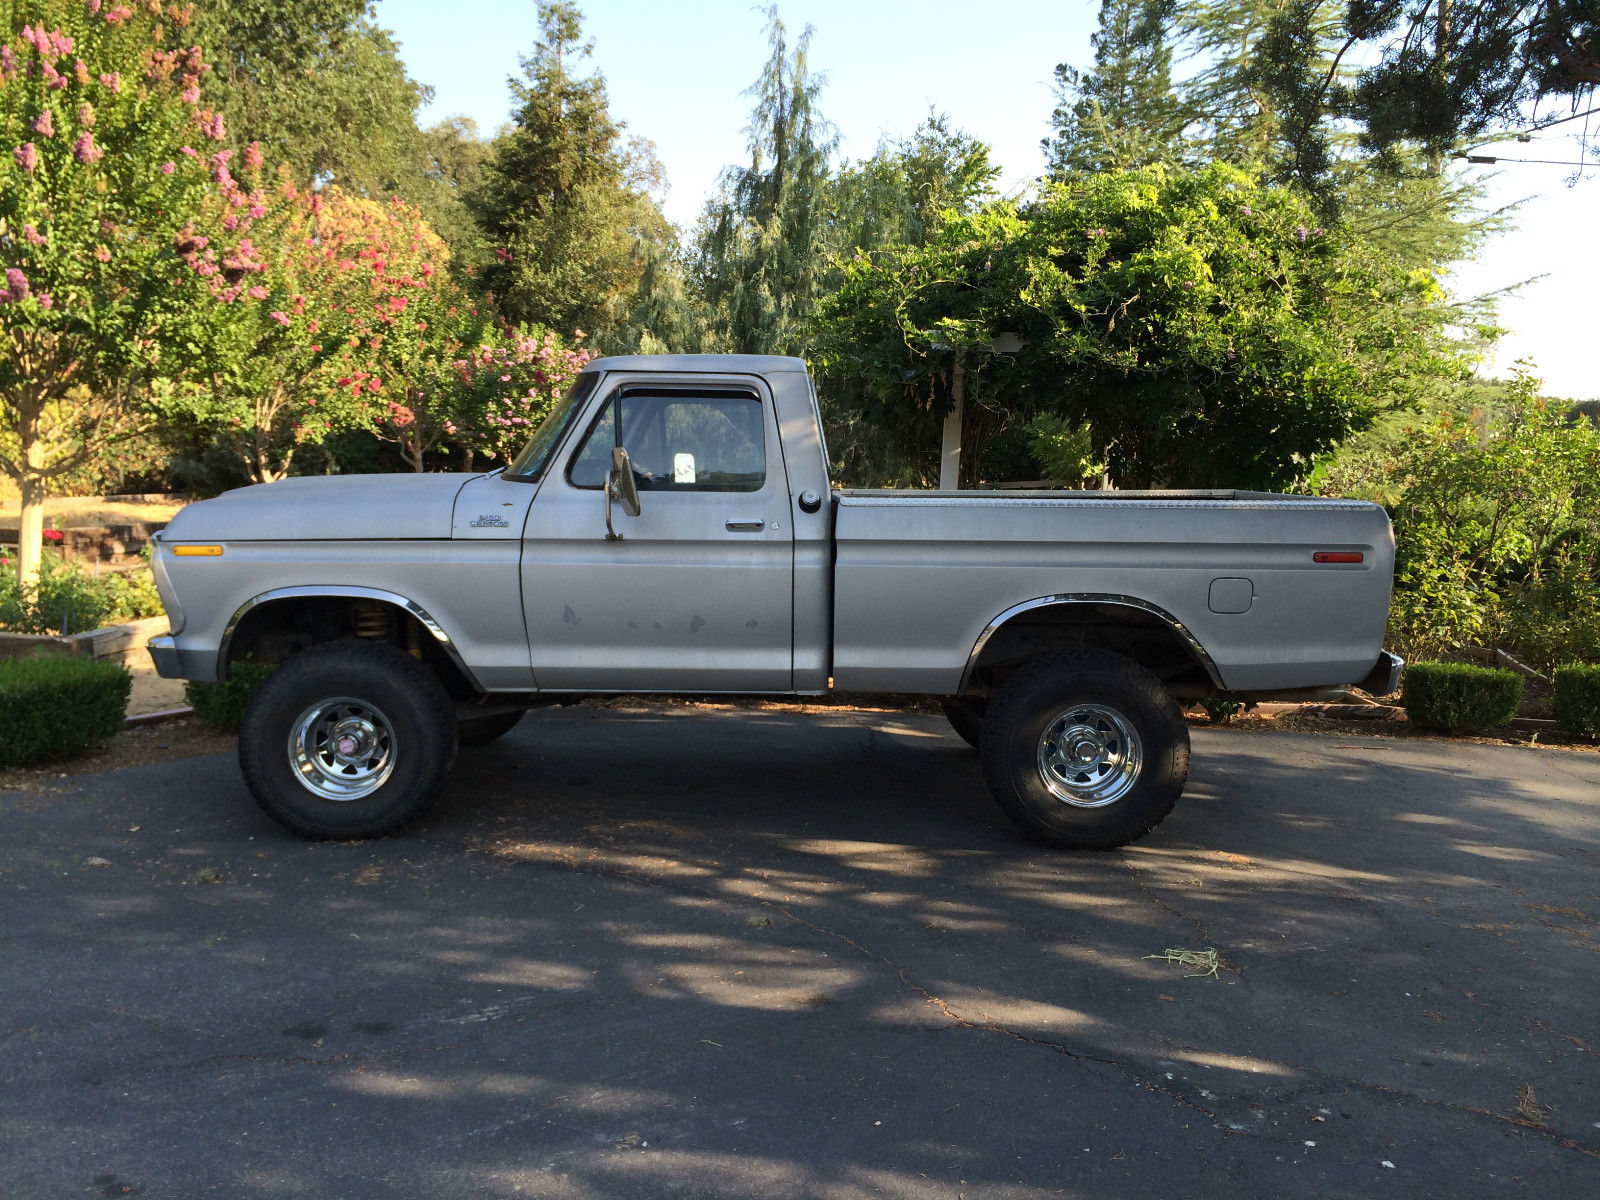 1977 ford f150 4x4 short bed 429 4spd for sale in redding california united states